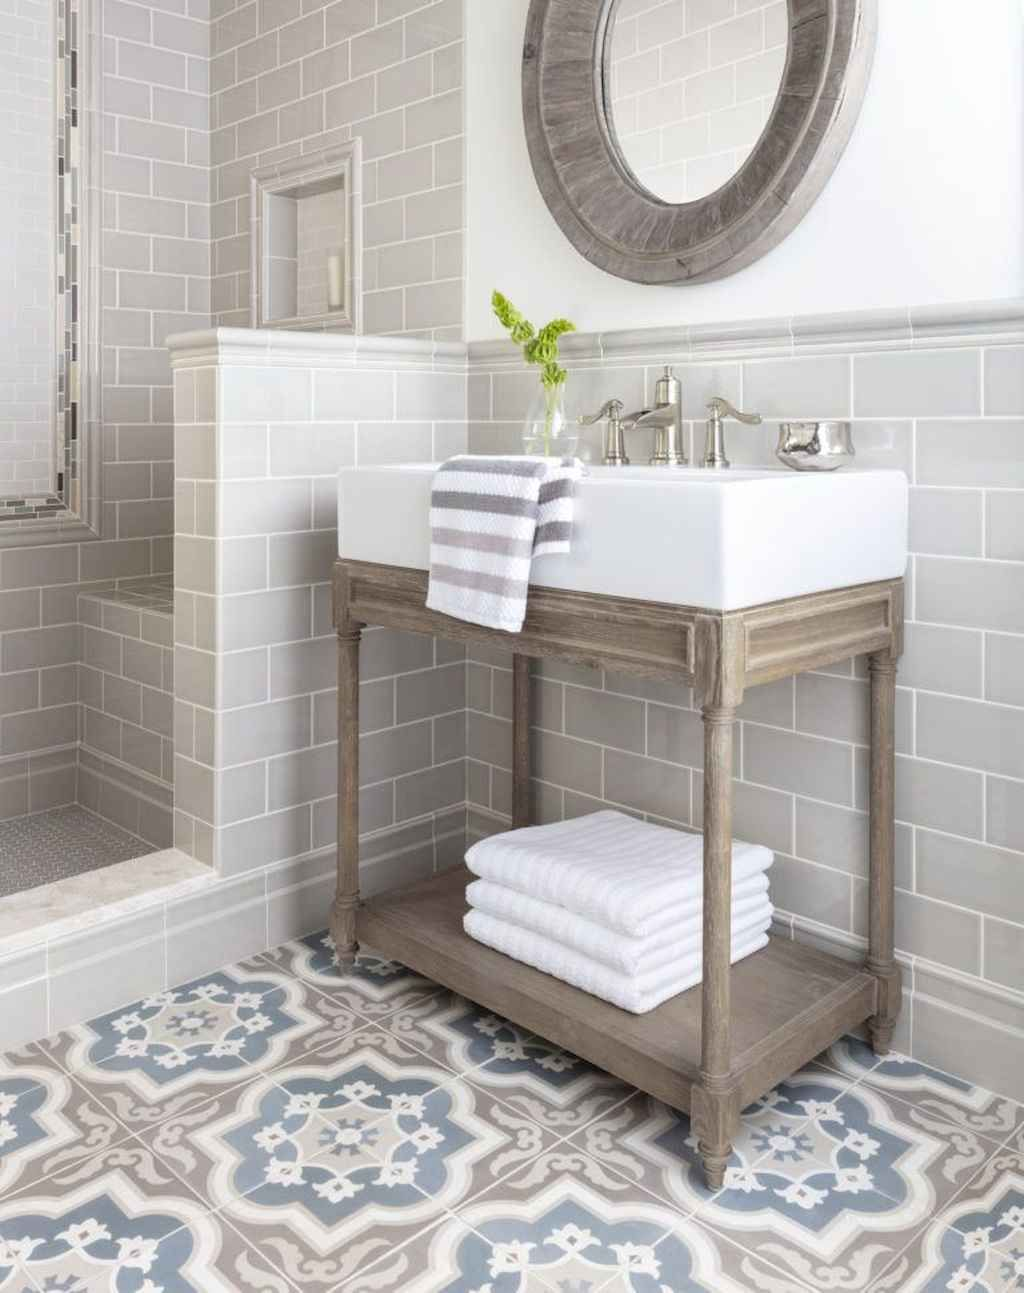 60 Farmhouse Master Bathroom Remodel Ideas - Gladecor.com